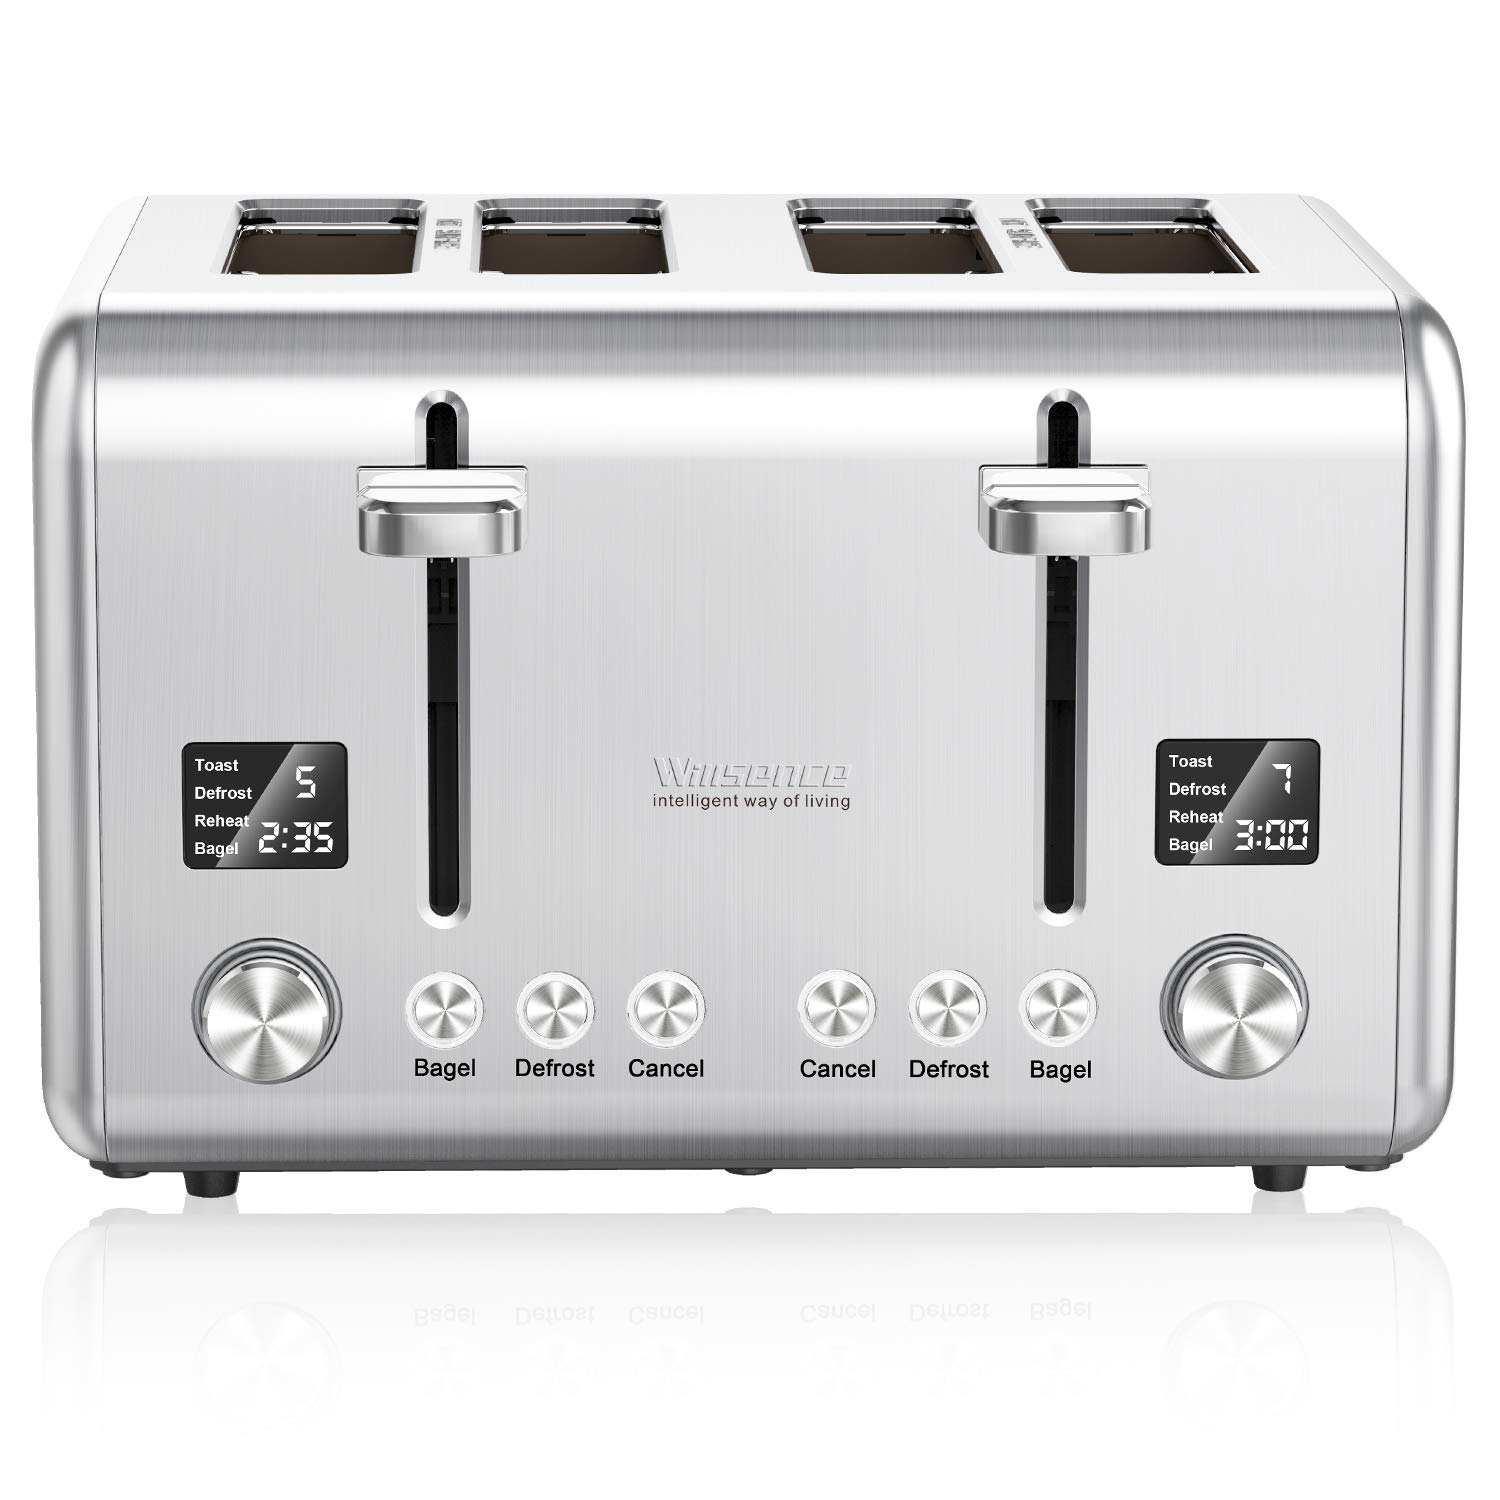 4-Slice Toaster, Willsence Stainless Steel Toaster 4 Slice Extra Wide Slots Bagel Toaster with 9 Bread Shade Settings, Bagel/Defrost /Cancel/Reheat Function, Removable Crumb Tray, 1800W, Silver